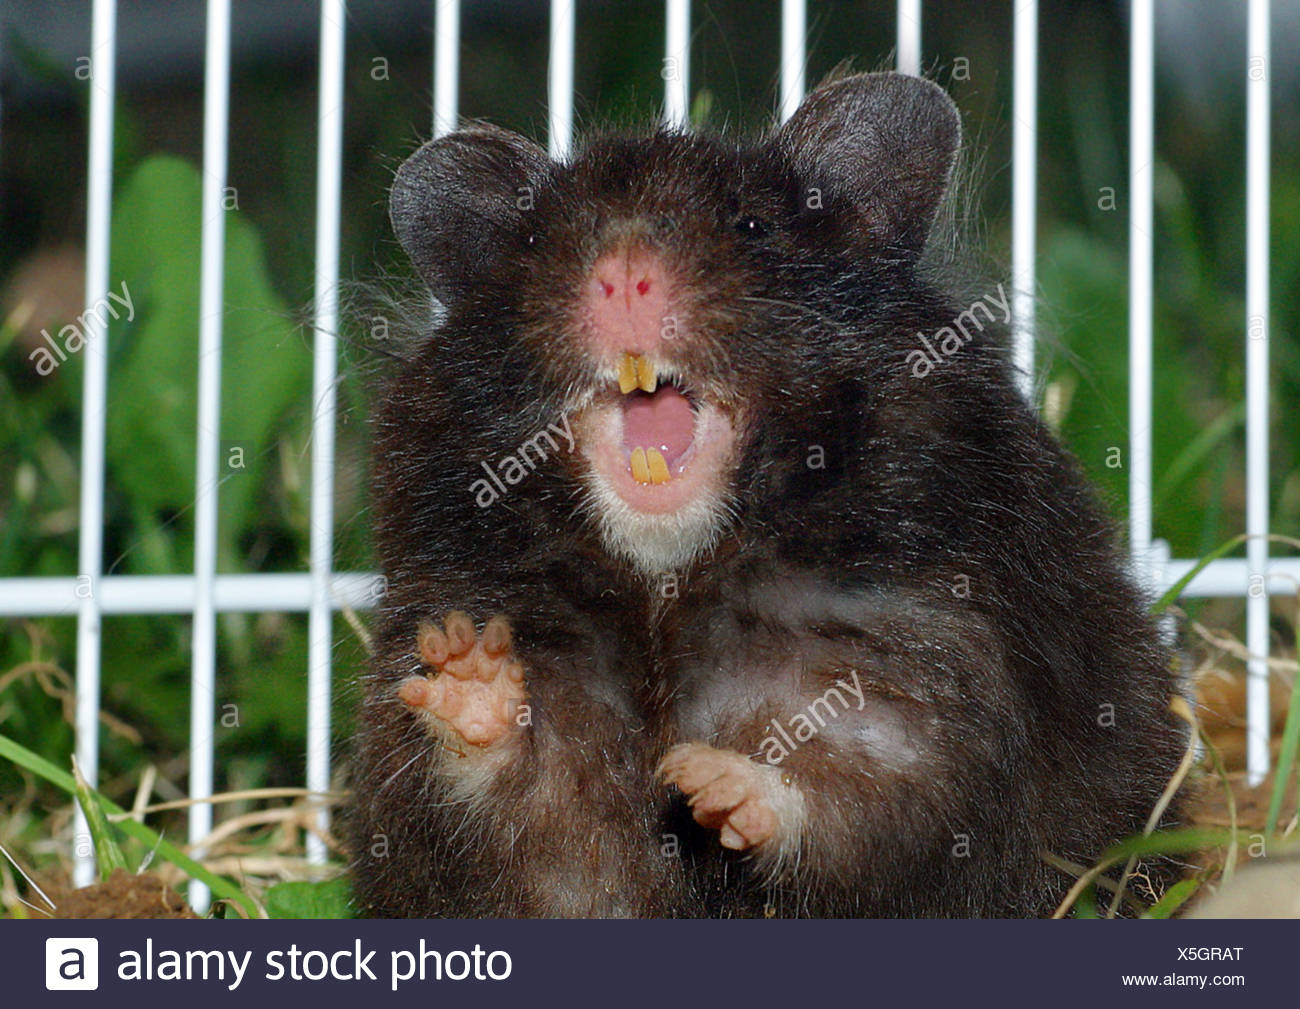 H Is For Hamster Stock Photos Amp H Is For Hamster Stock